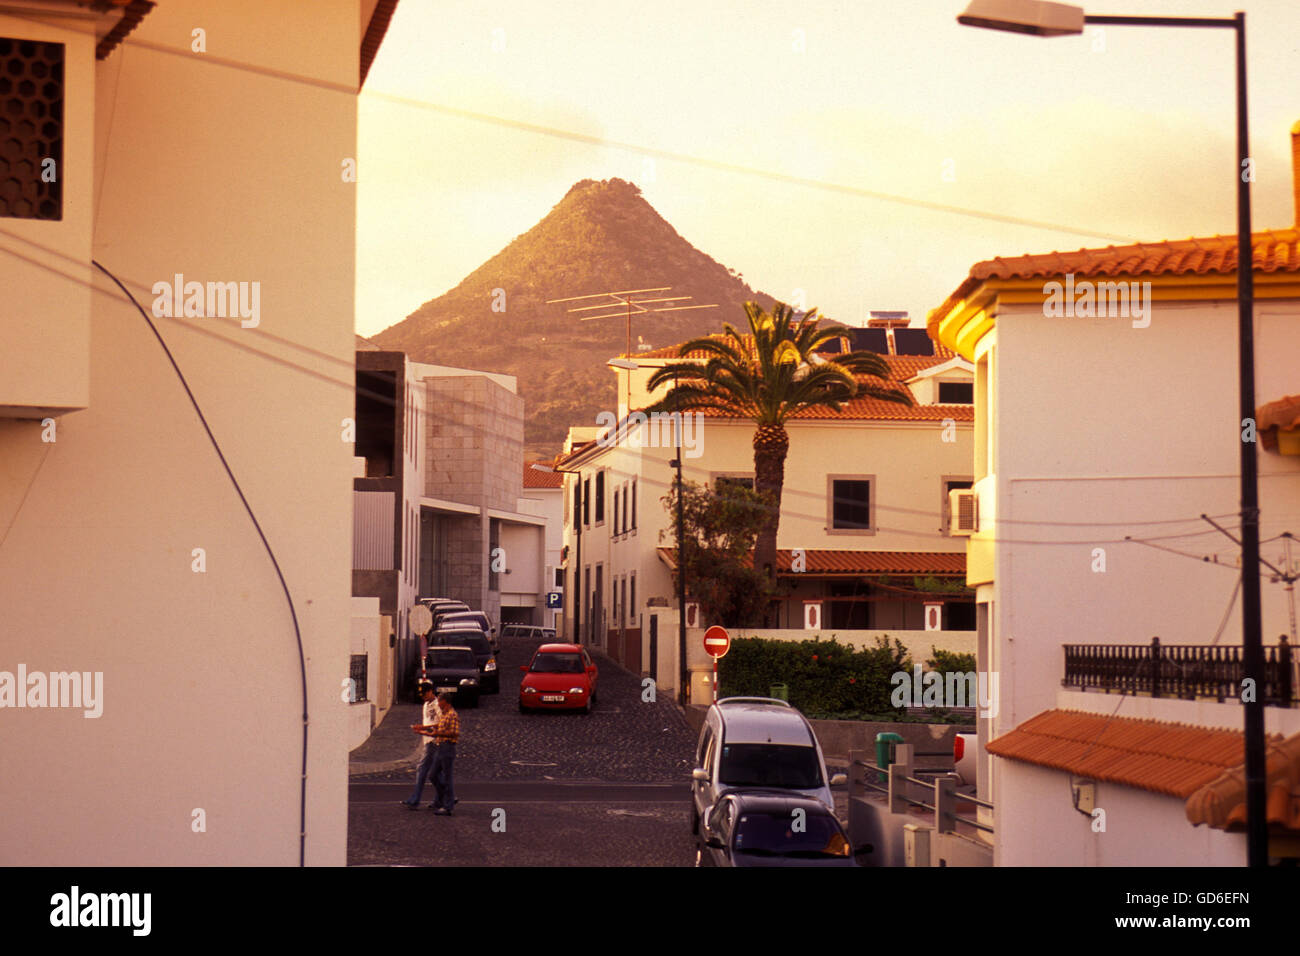 the Village on the Island of Porto Santo ot the Madeira Islands in the Atlantic Ocean of Portugal. - Stock Image